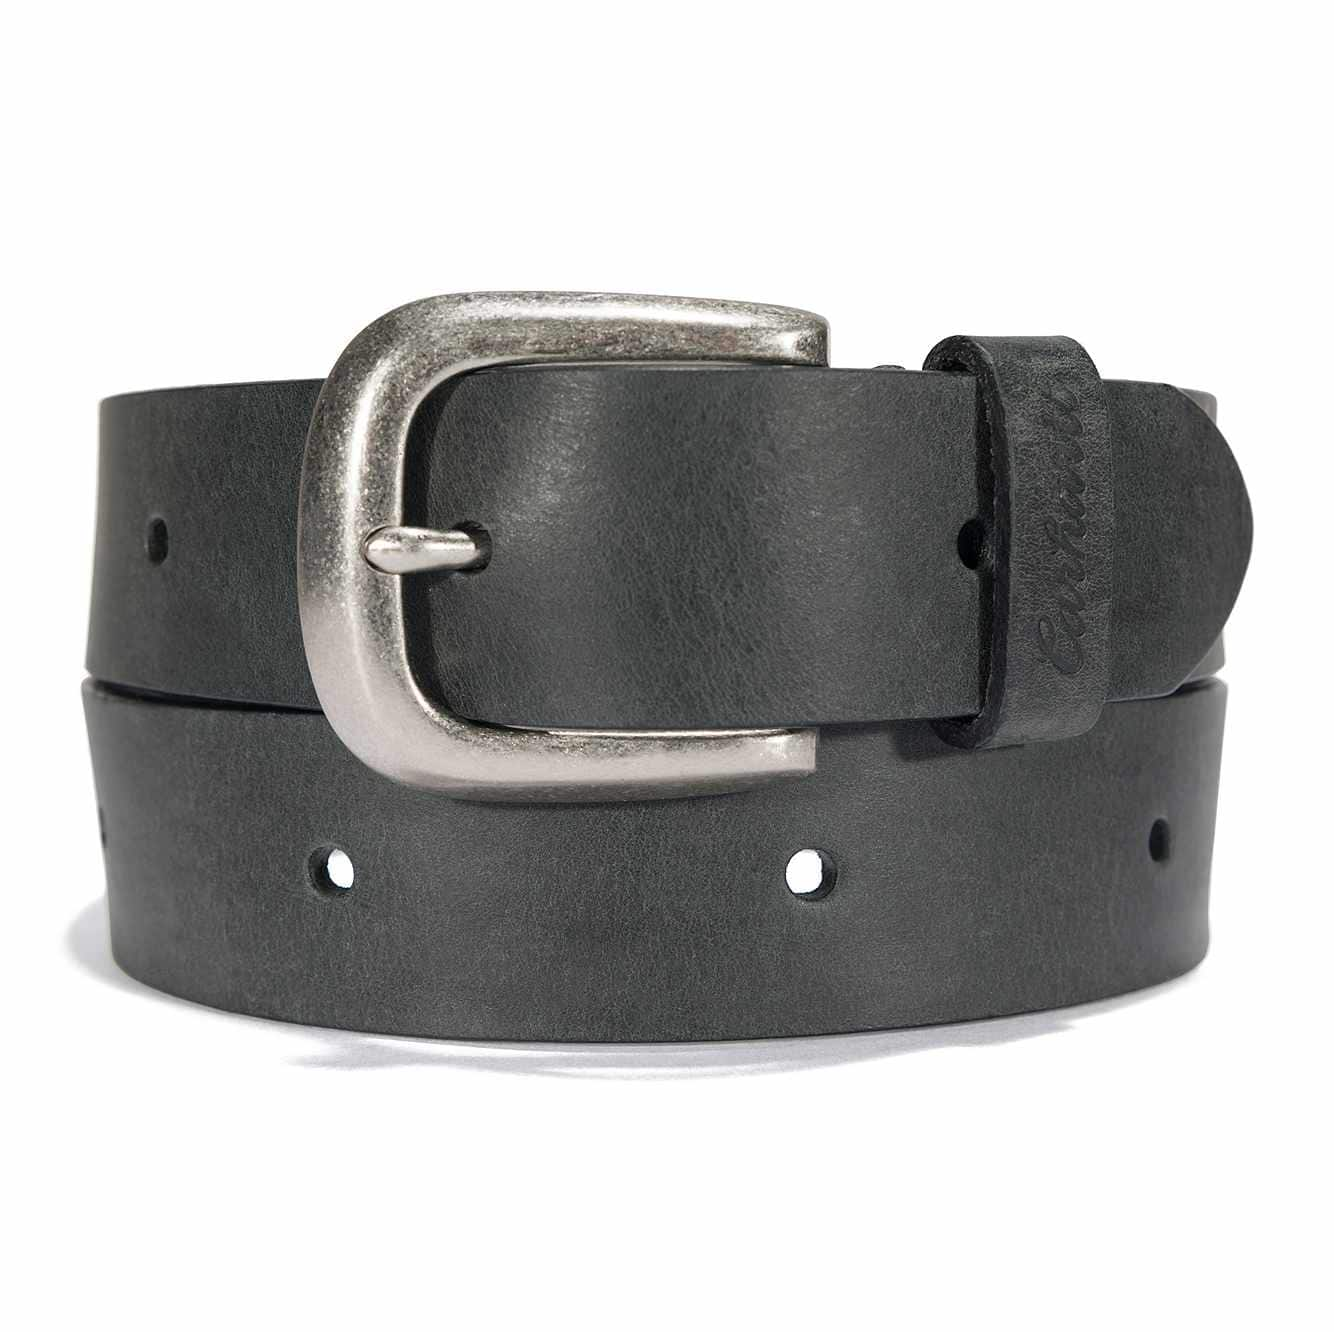 Picture of Women's Continuous Belt in Black